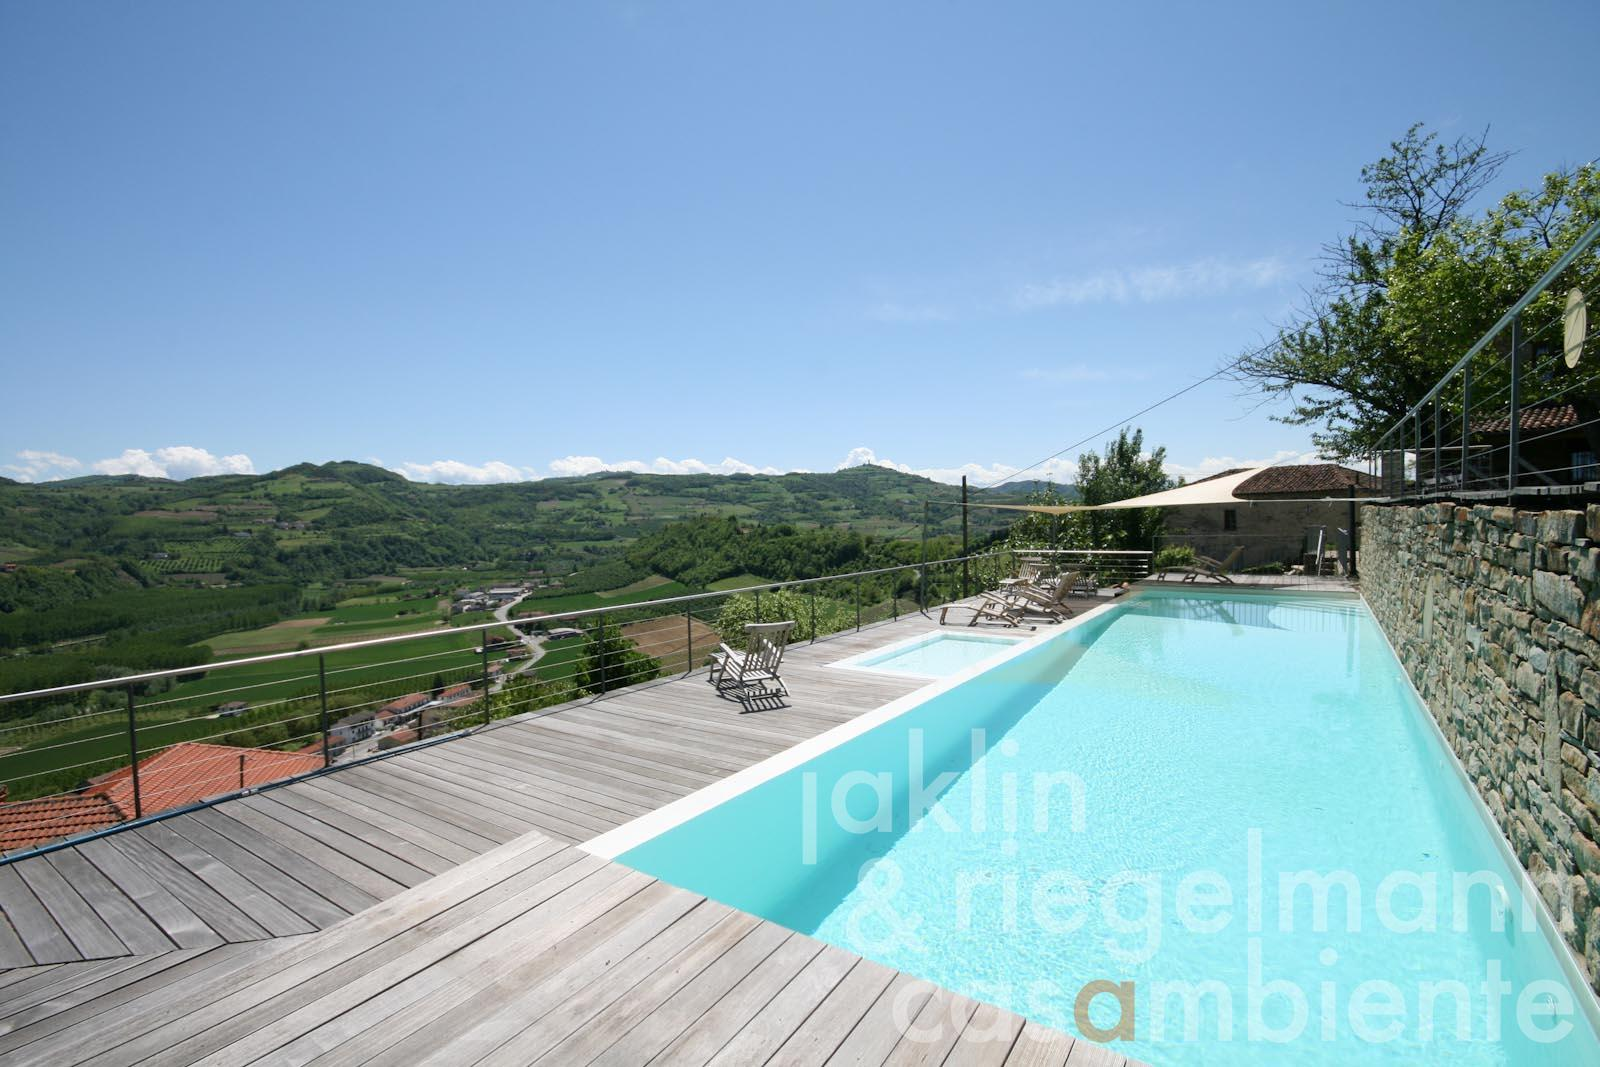 The restored village house for sale with swimming pool and panoramic views in Piedmont